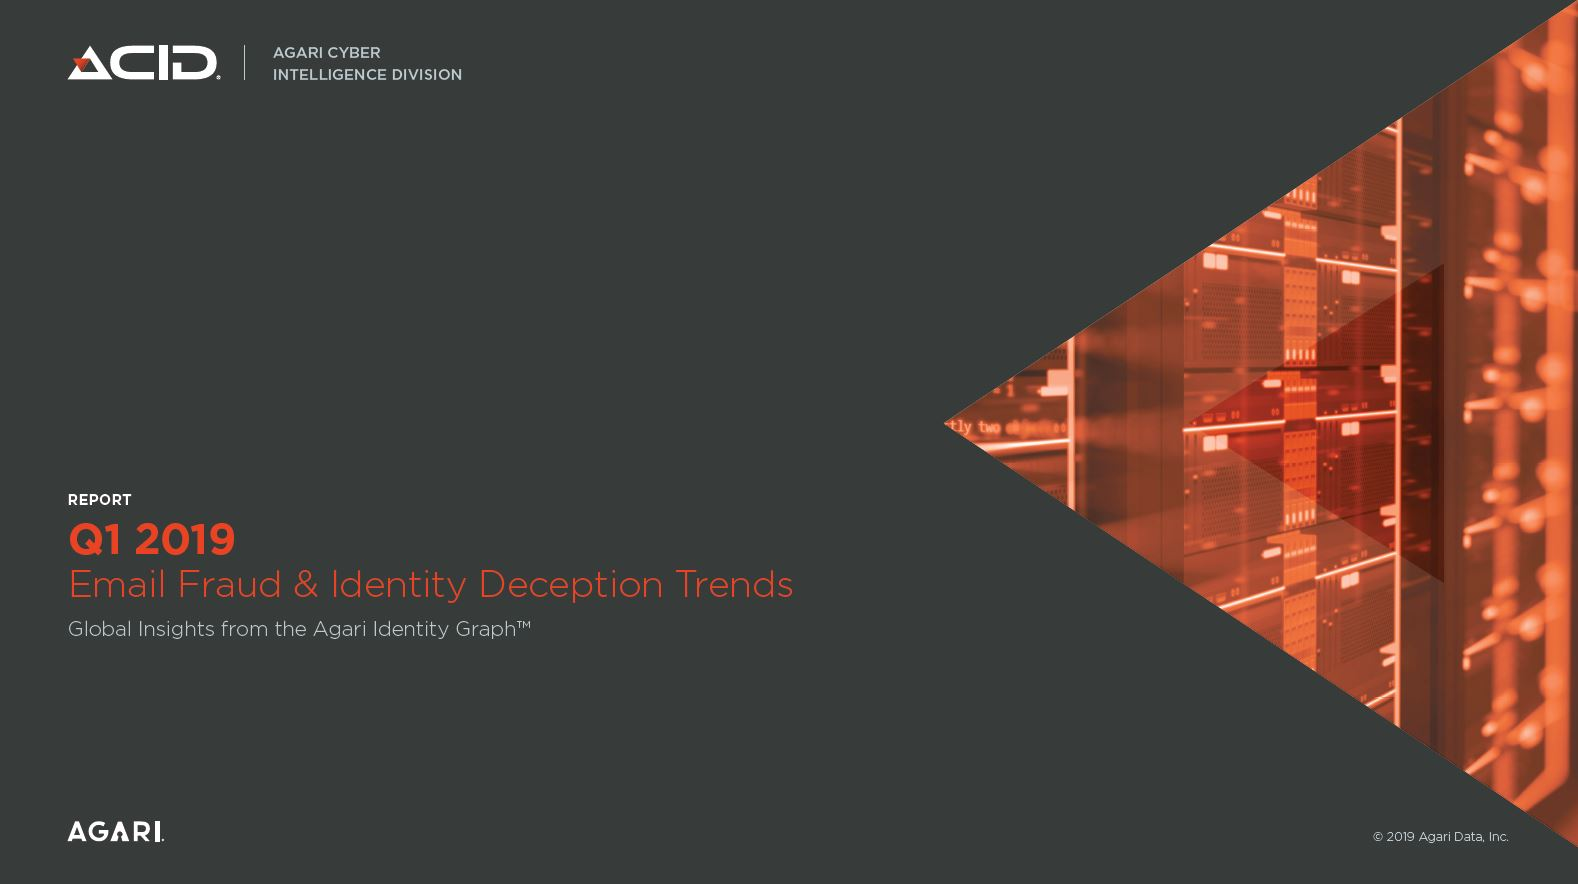 Email Fraud & Identity Deception Trends: Q1 2019